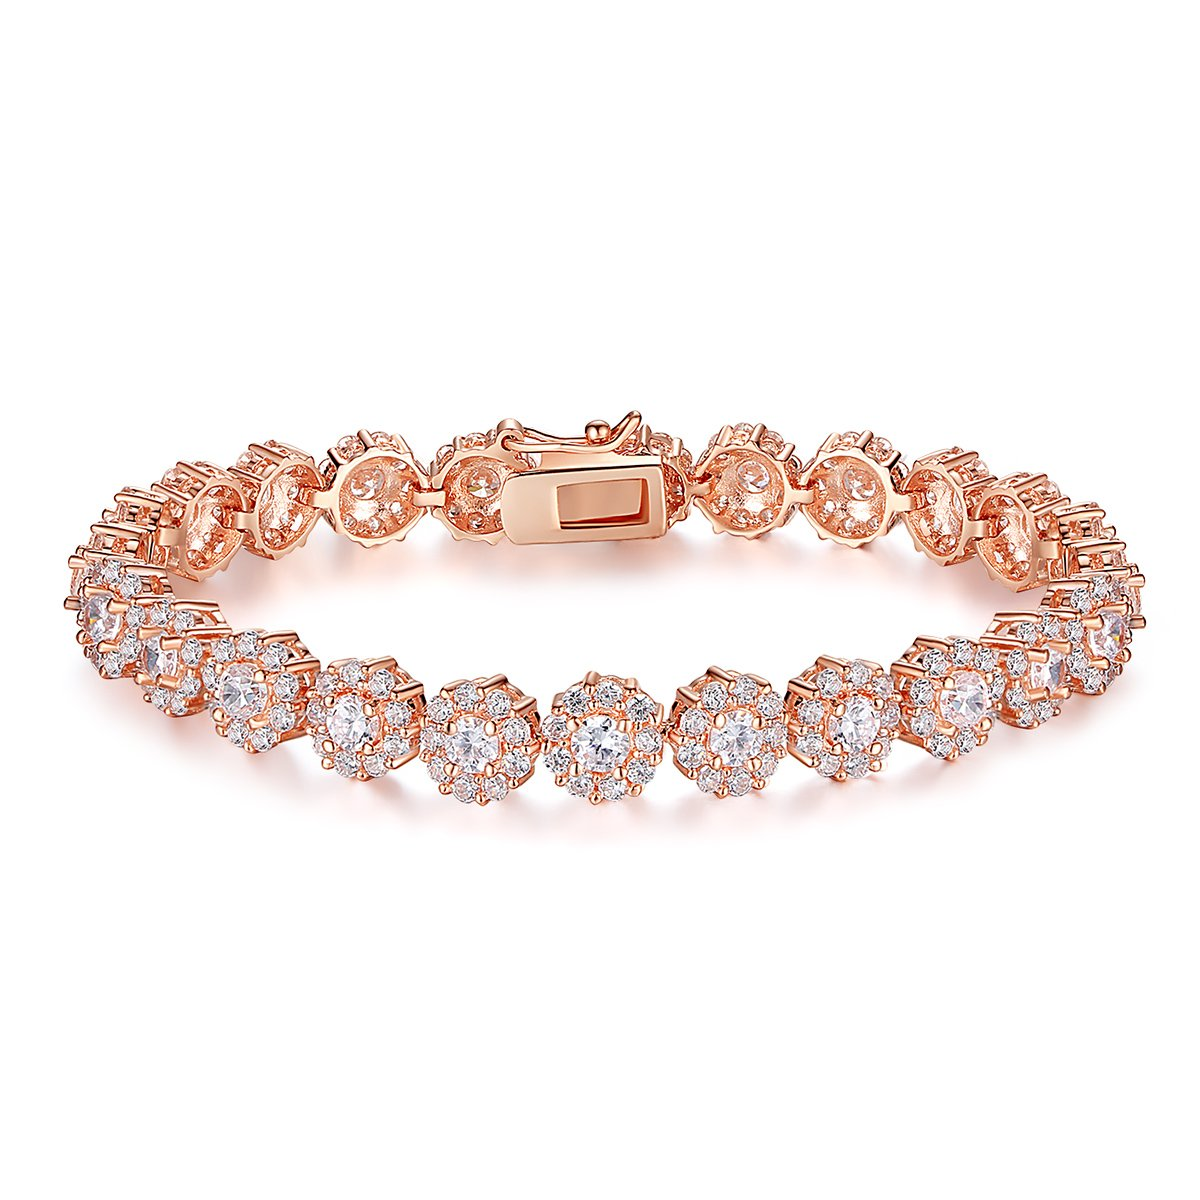 BAMOER Classic Rose Gold Plated Bracelet with Sparkling White Cubic Zirconia for Women 6.7 Inches by BAMOER